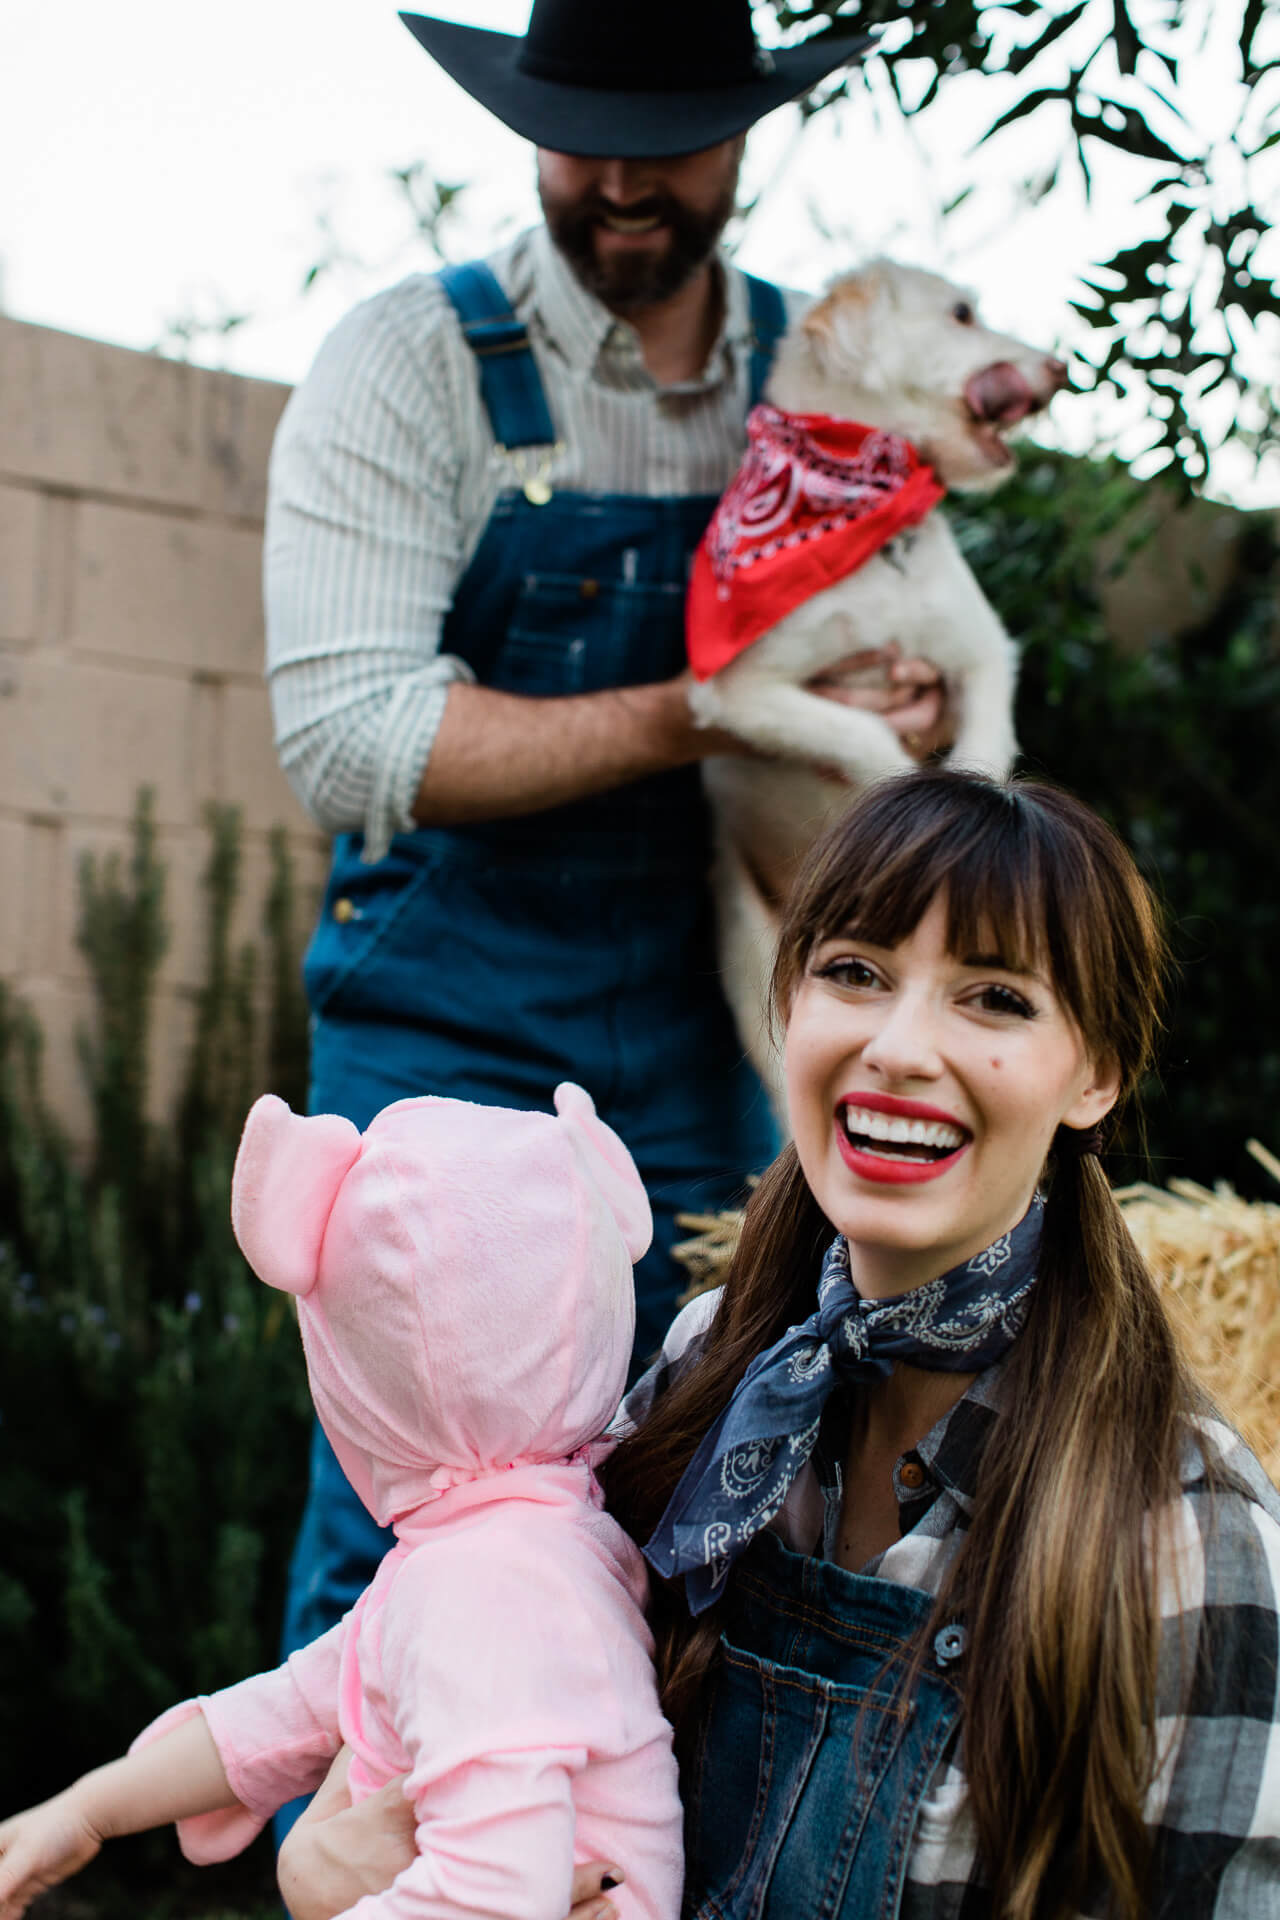 Love our farmer Halloween costumes!